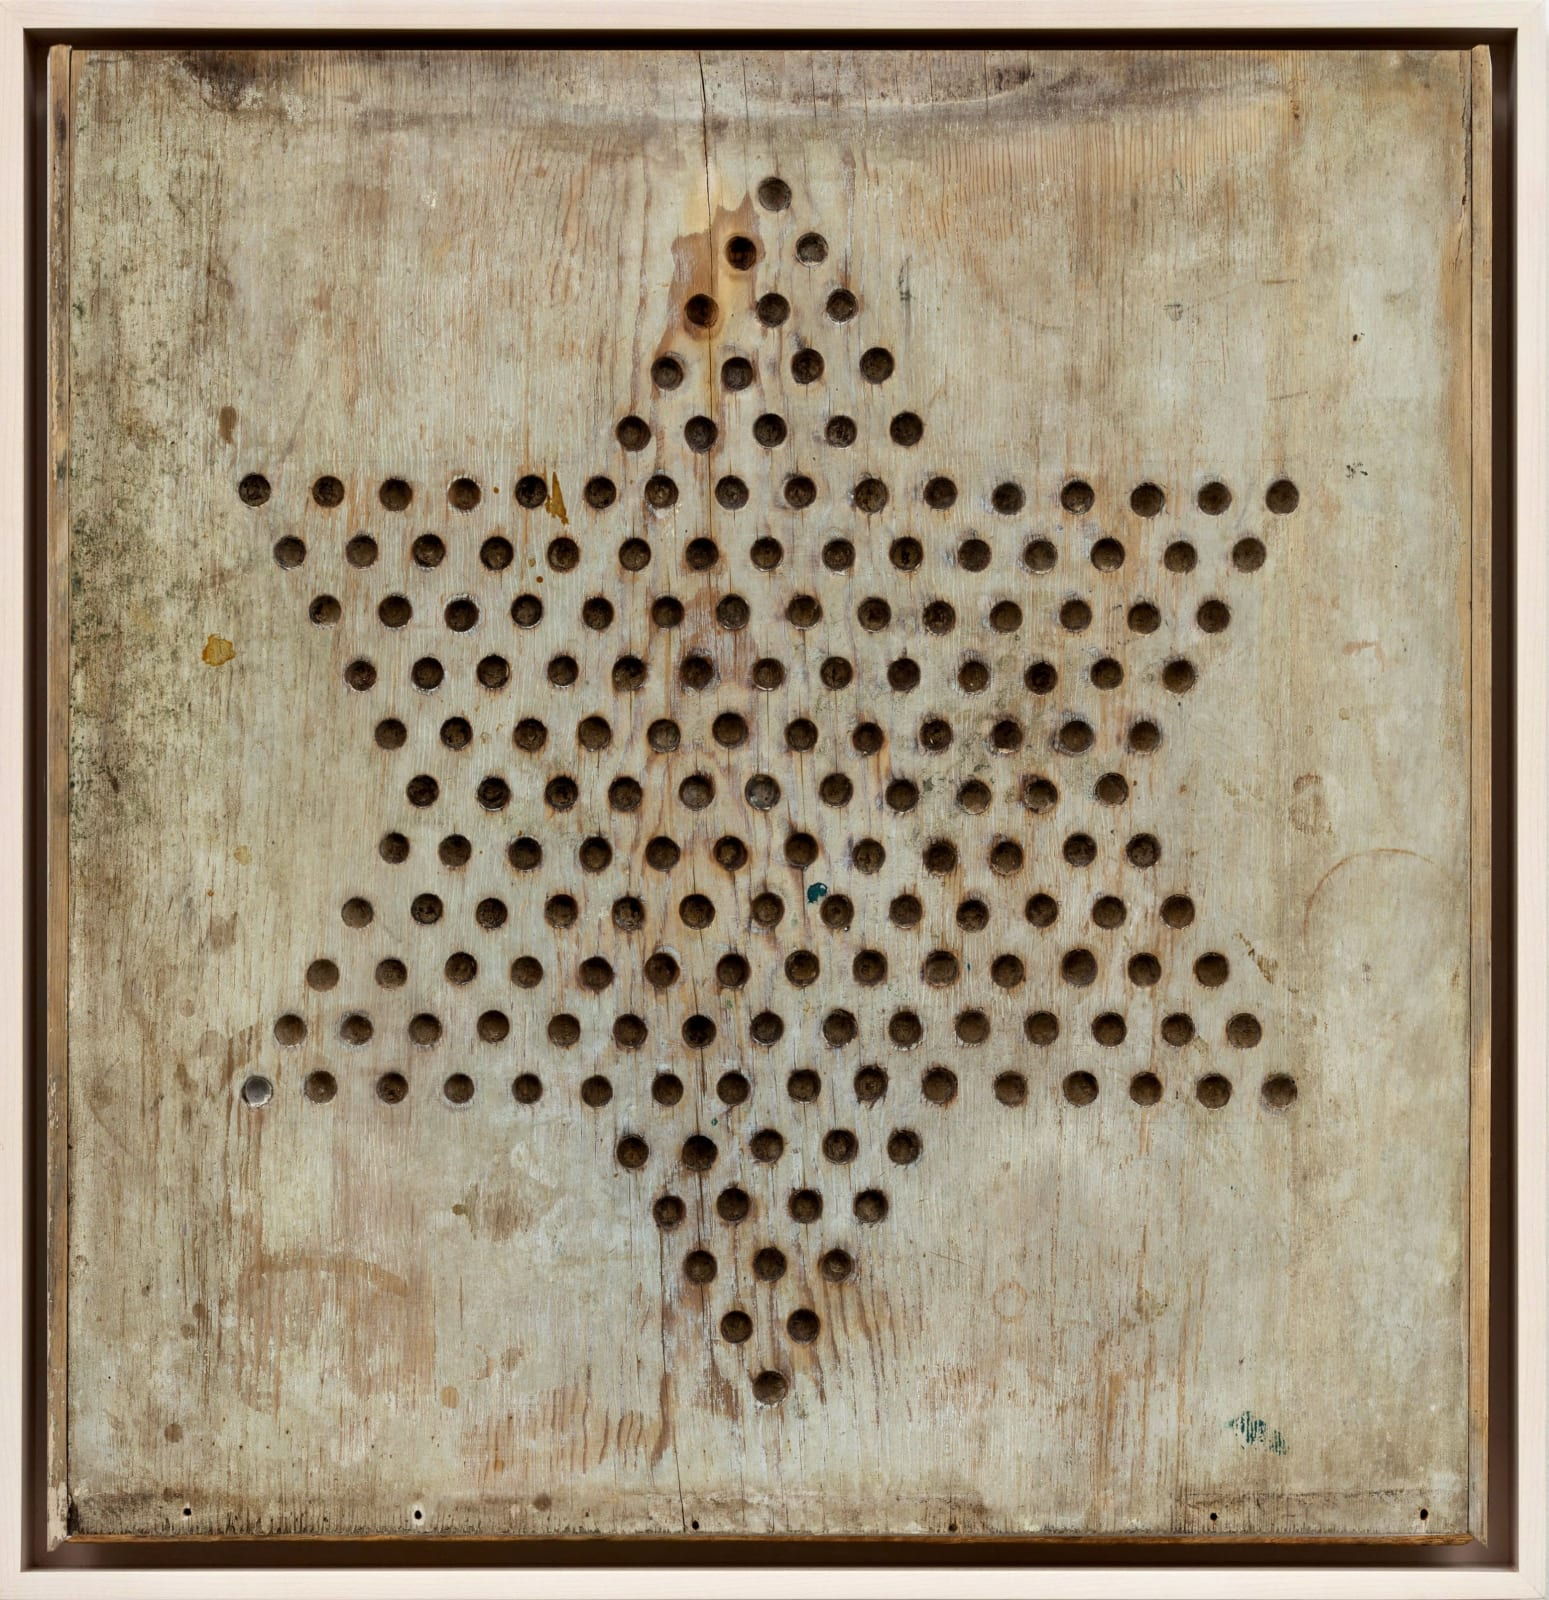 CHINESE CHECKERS GAME BOARD, C. 1920-30 Light grey wash on wood panel 24 1/2 x 23 1/2 in. 62.2 x 59.7 cm. (AU 286)